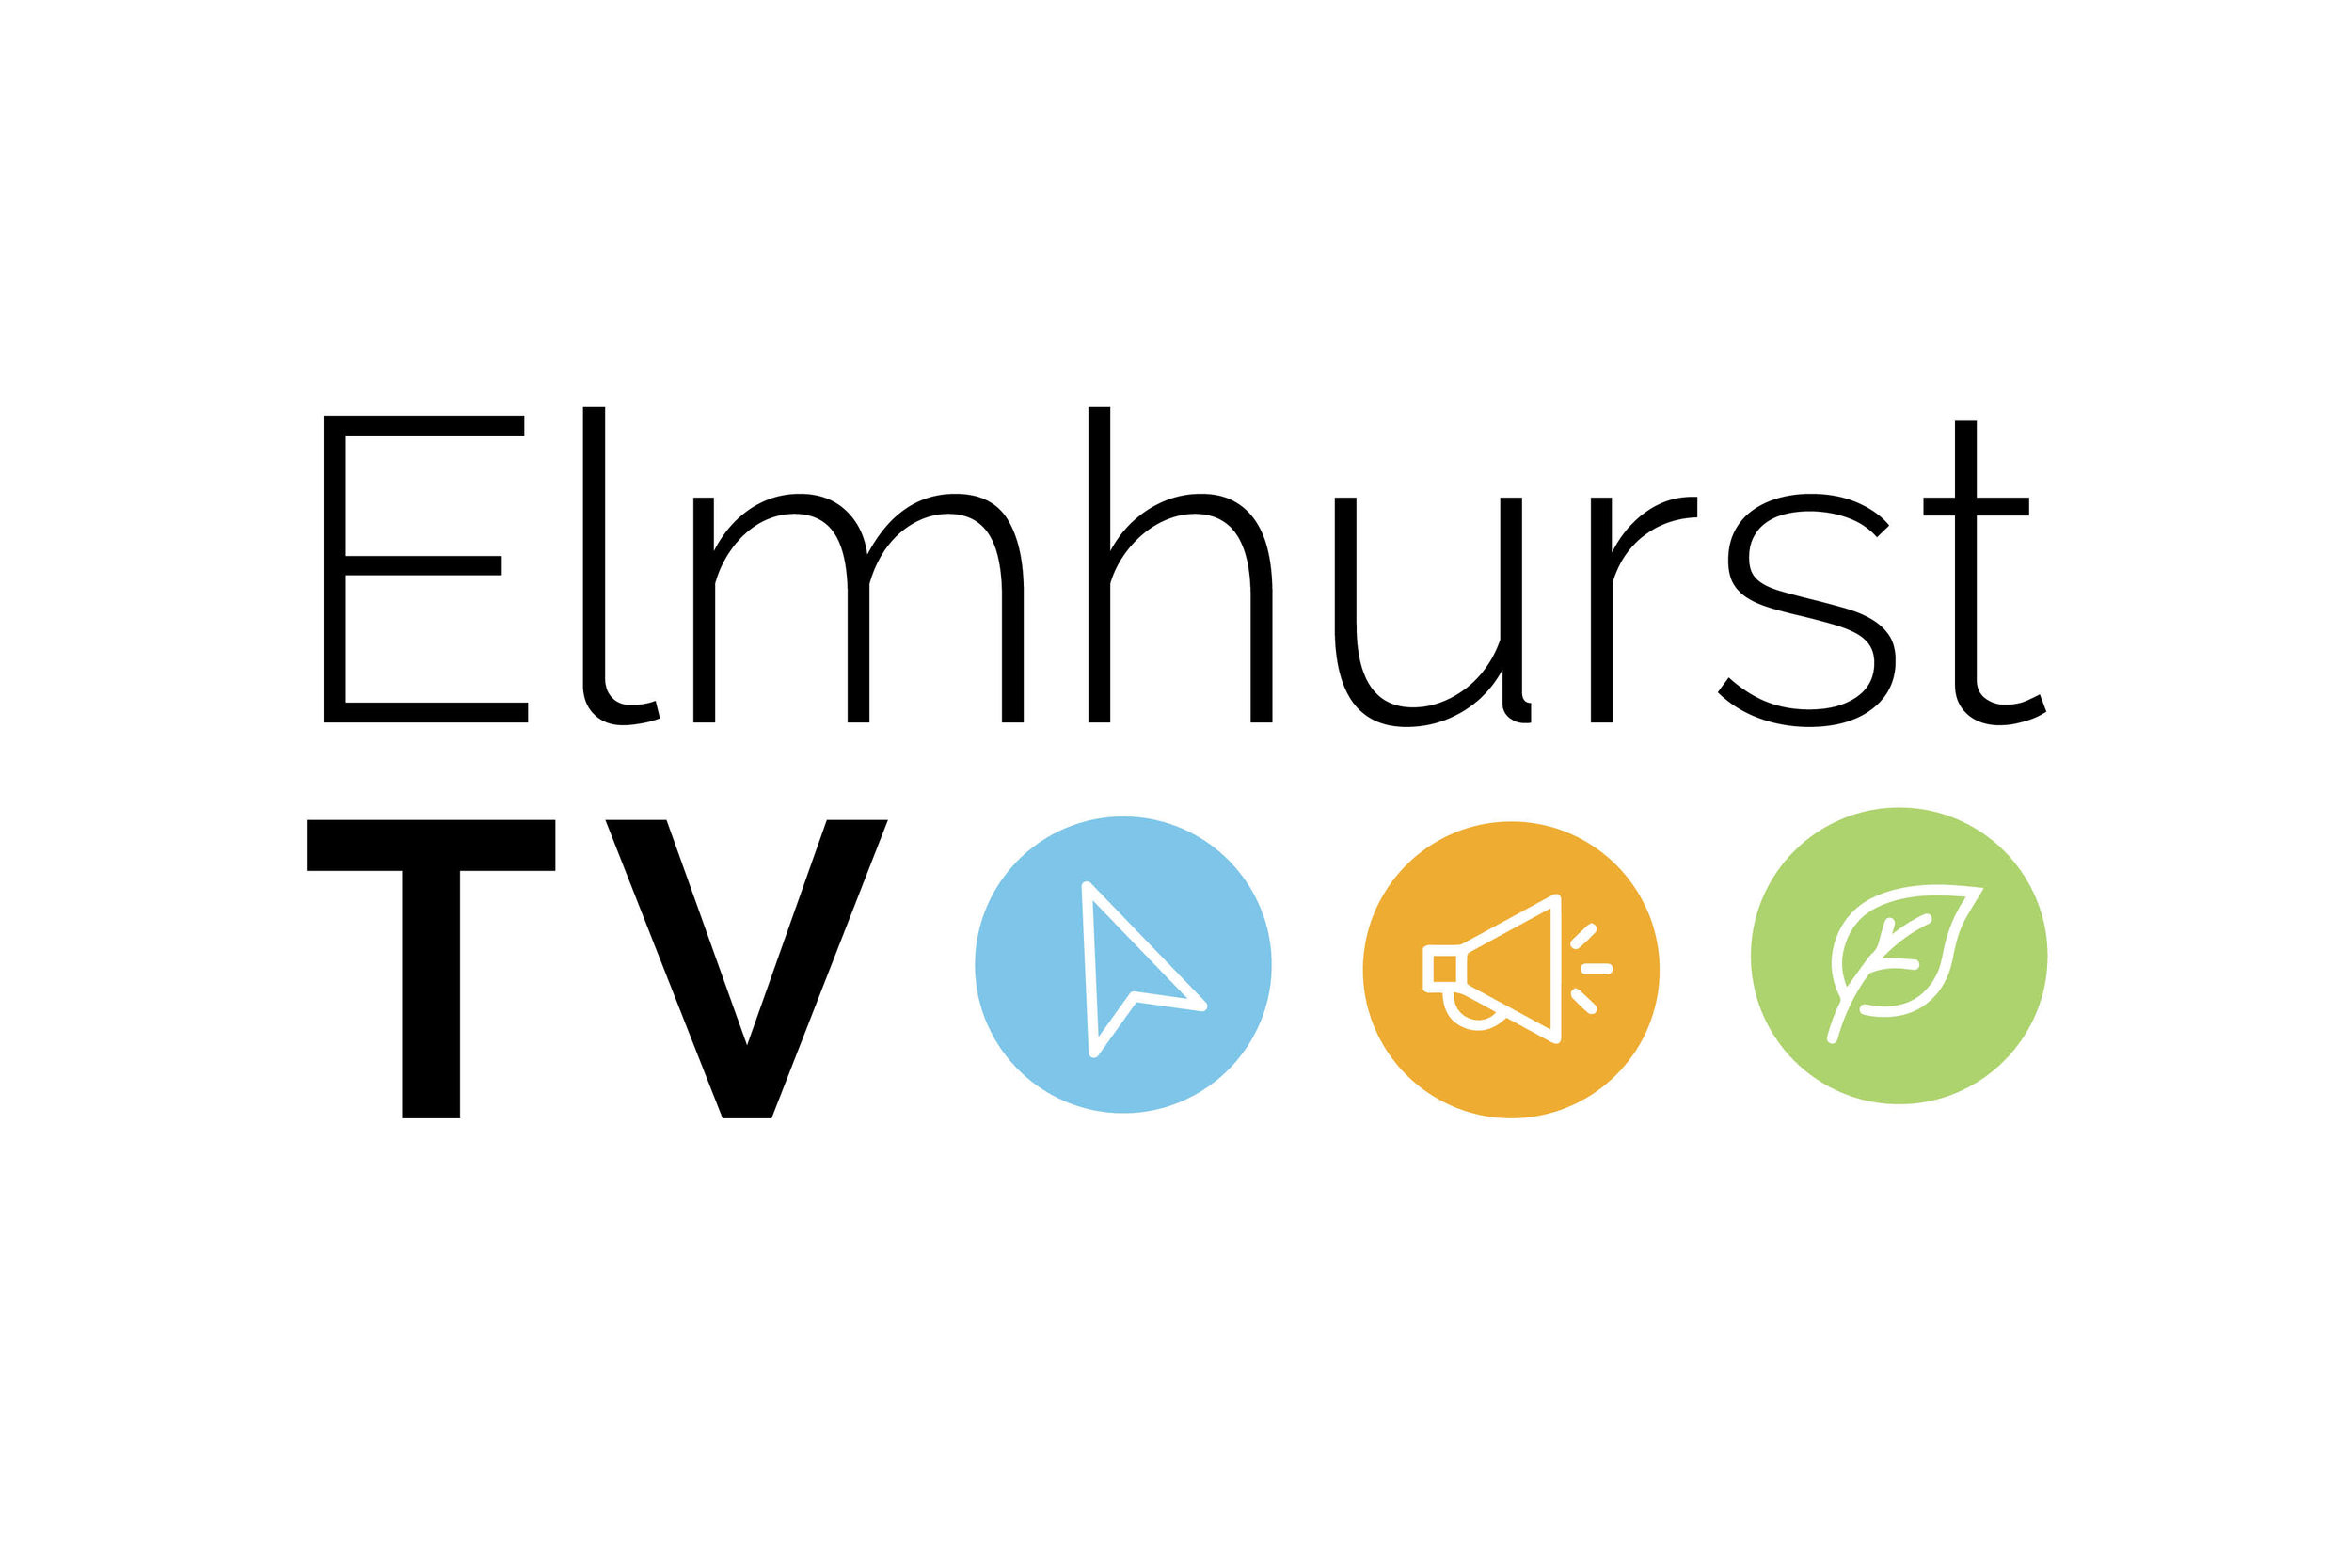 ElmhurstTV - ElmhurstTV was a preexisting YouTube channel and local TV station, but in desperate need of design. My goal was to create a branding system as the YouTube channel had three sub-channels, Elmhurst Now, City of Elmhurst, and Explore Elmhurst. View the gallery below to see the creative process from sketchbook to final logo.